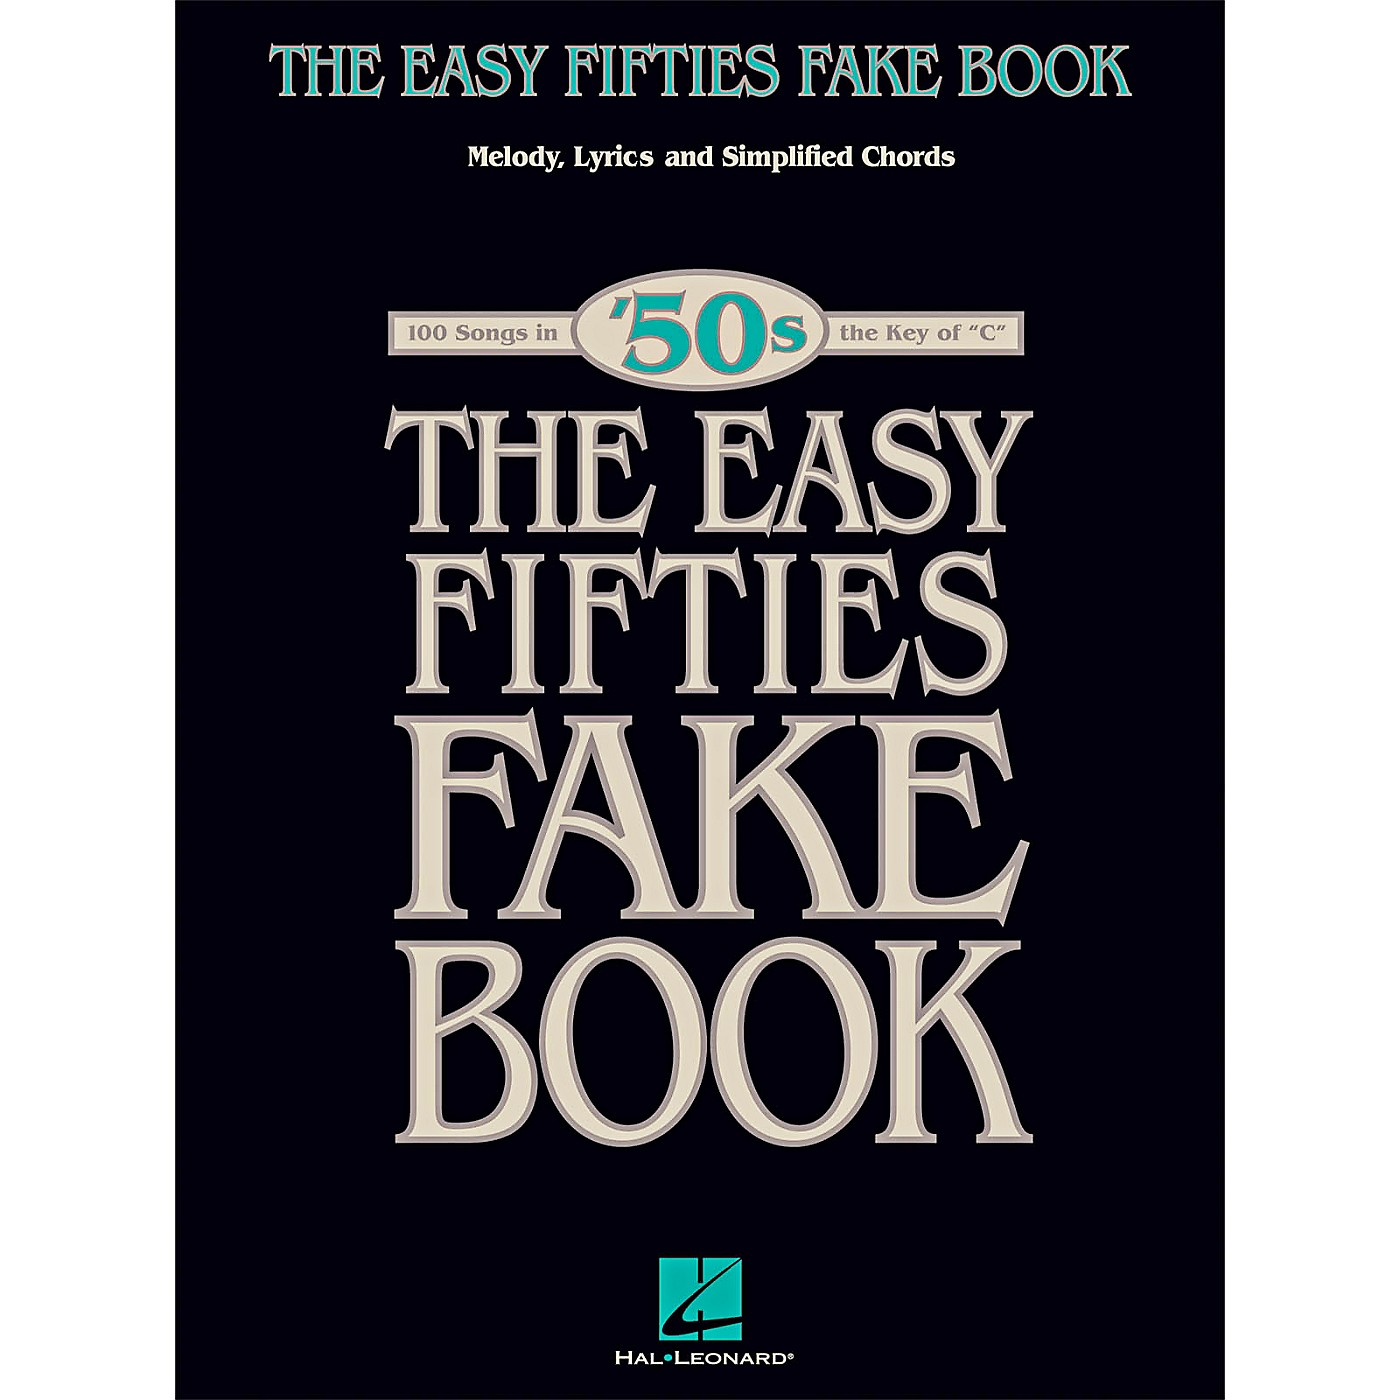 Hal Leonard The Easy Fifties Fake Book - Melody, Lyrics & Simplified Chords in Key Of C thumbnail